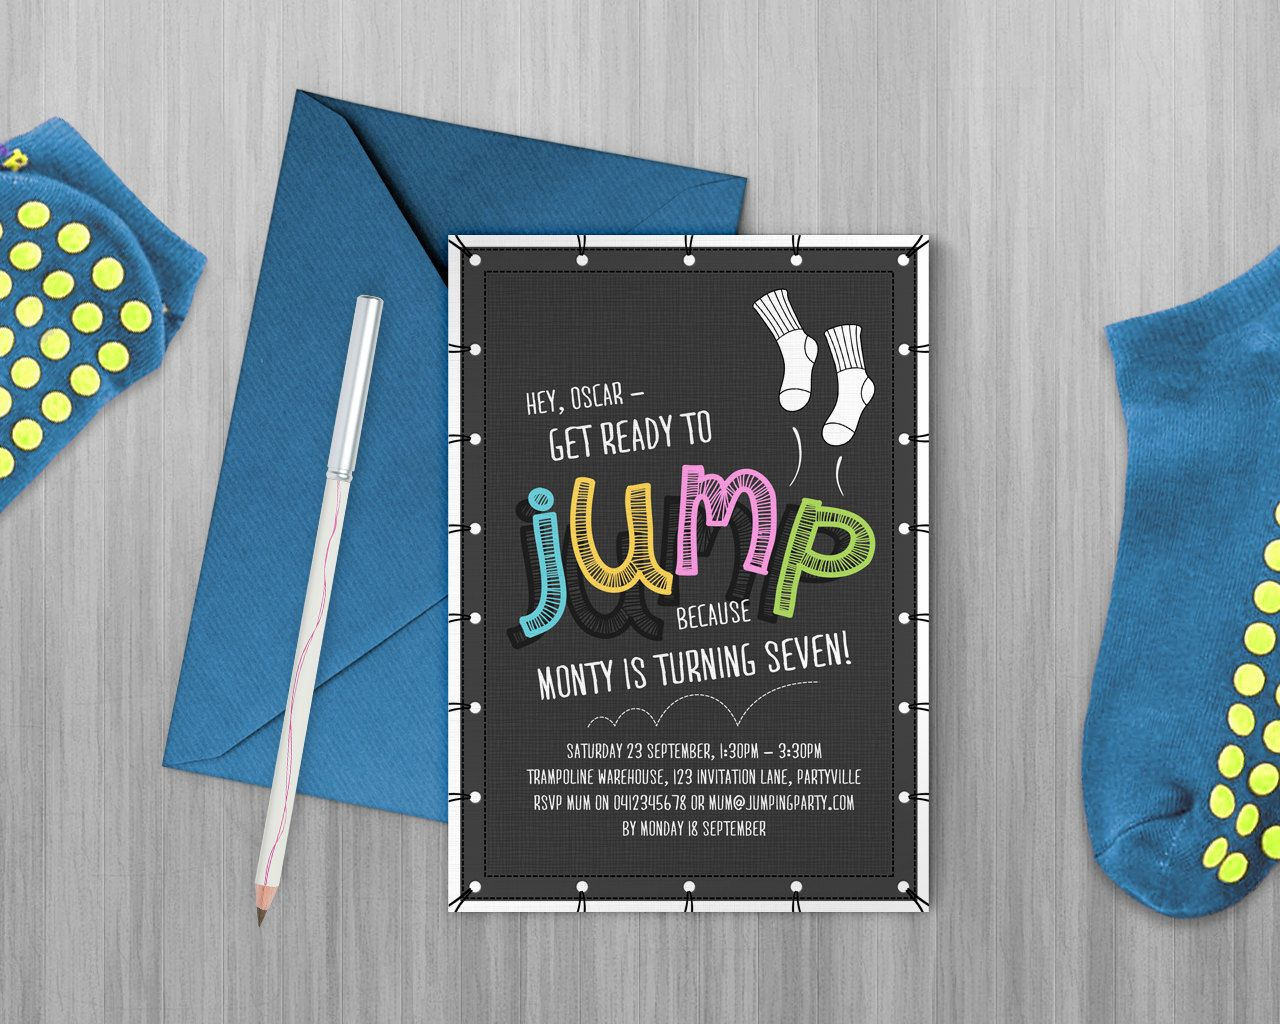 free printable0th wedding anniversary invitations%0A Jump Printable Invitation  Trampoline Party  Bounce Party  Flip Out Party  Invitation  Edit